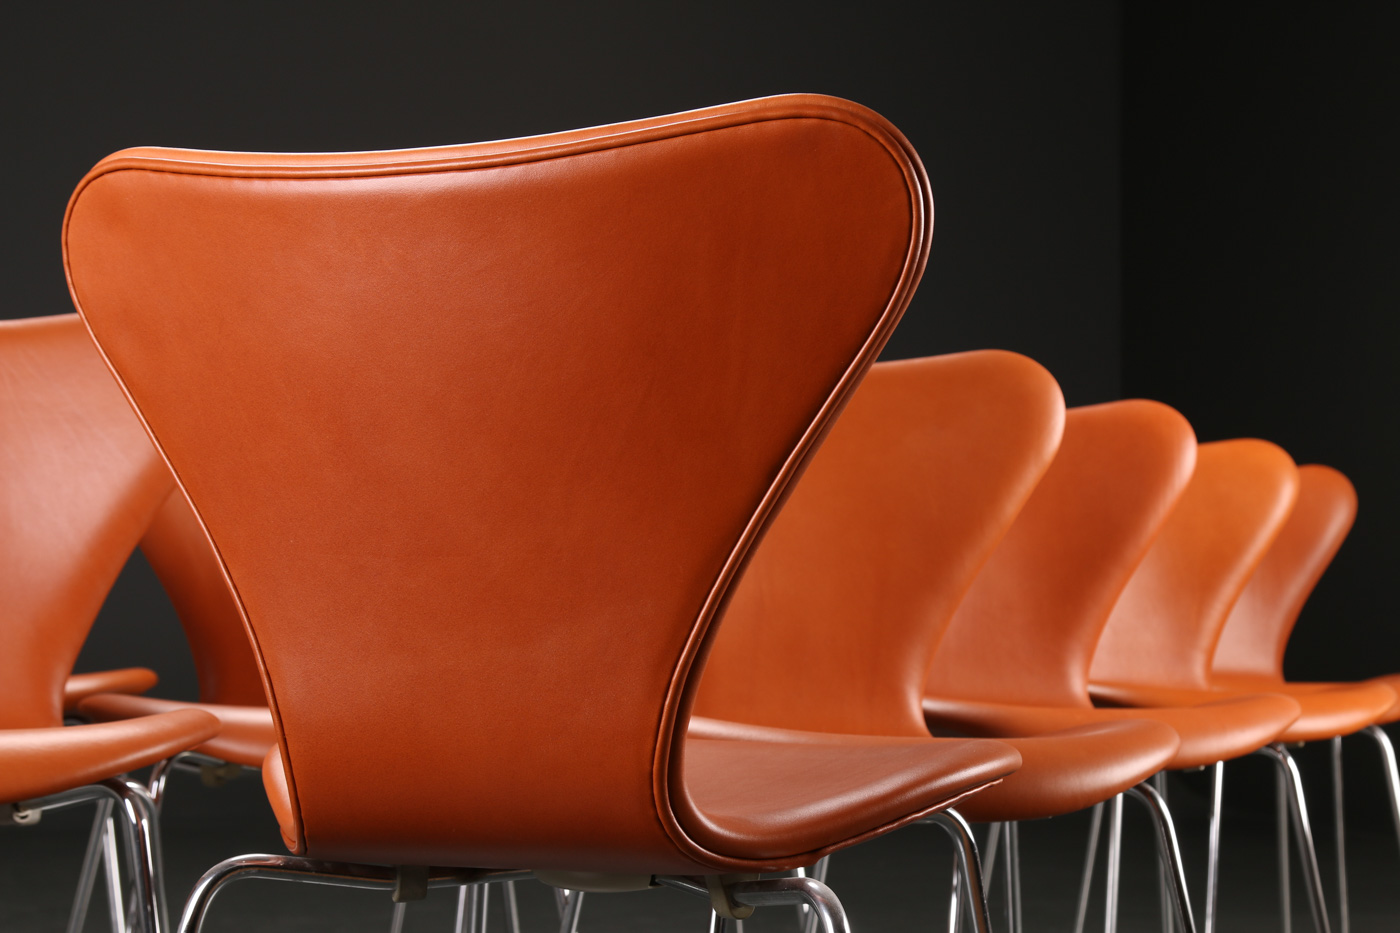 Arne Jacobsen. 12 Series 7 chairs, model 3107, cognac leather (12)